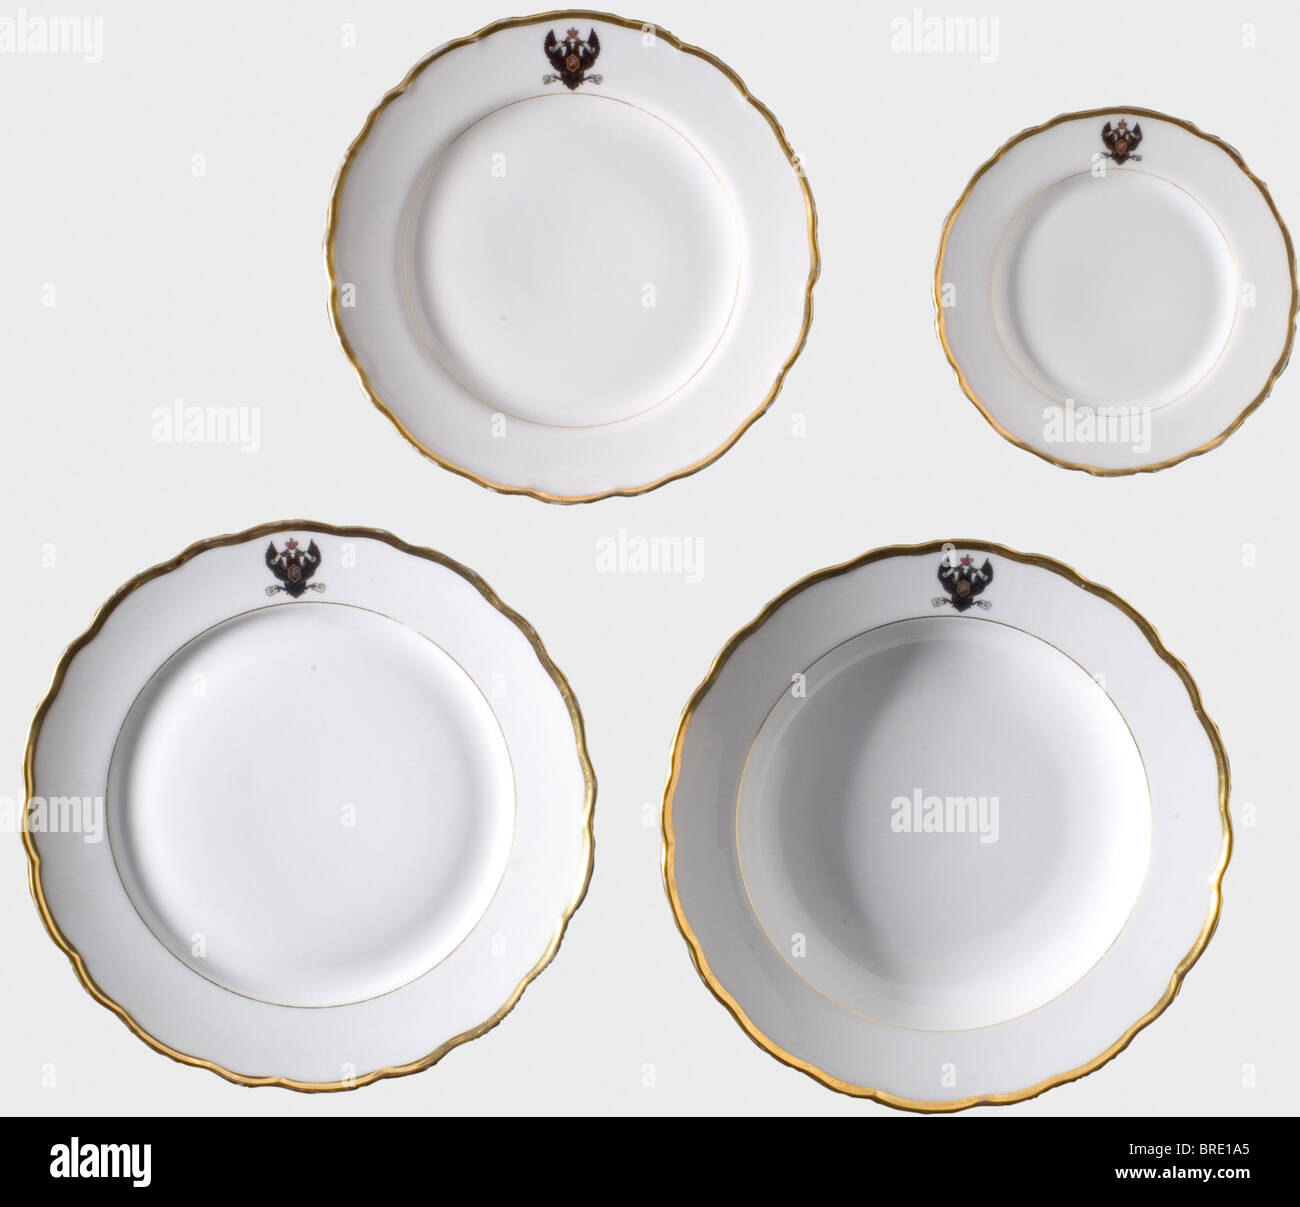 Imperial Russian Naval Ministry 20 plates from the table service Made at the Kornilov Brothers Manufactories in St. Petersburg  sc 1 st  Alamy & Imperial Russian Naval Ministry 20 plates from the table service ...